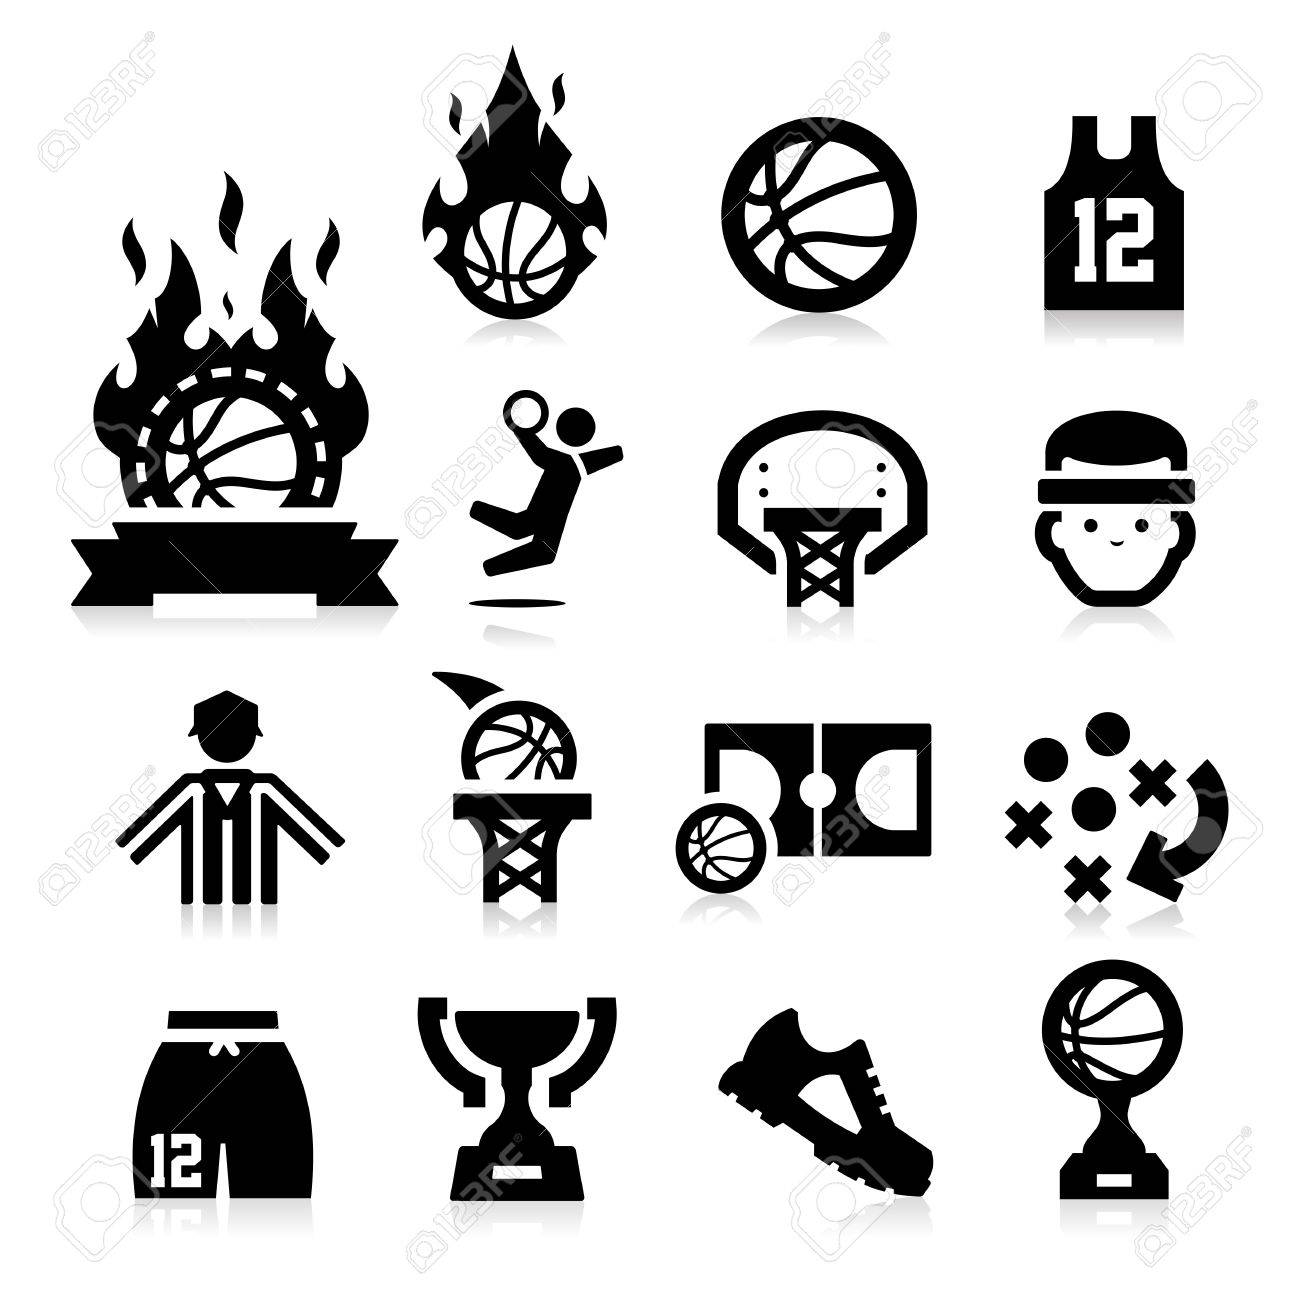 Basketball Icons Stock Vector - 17794125